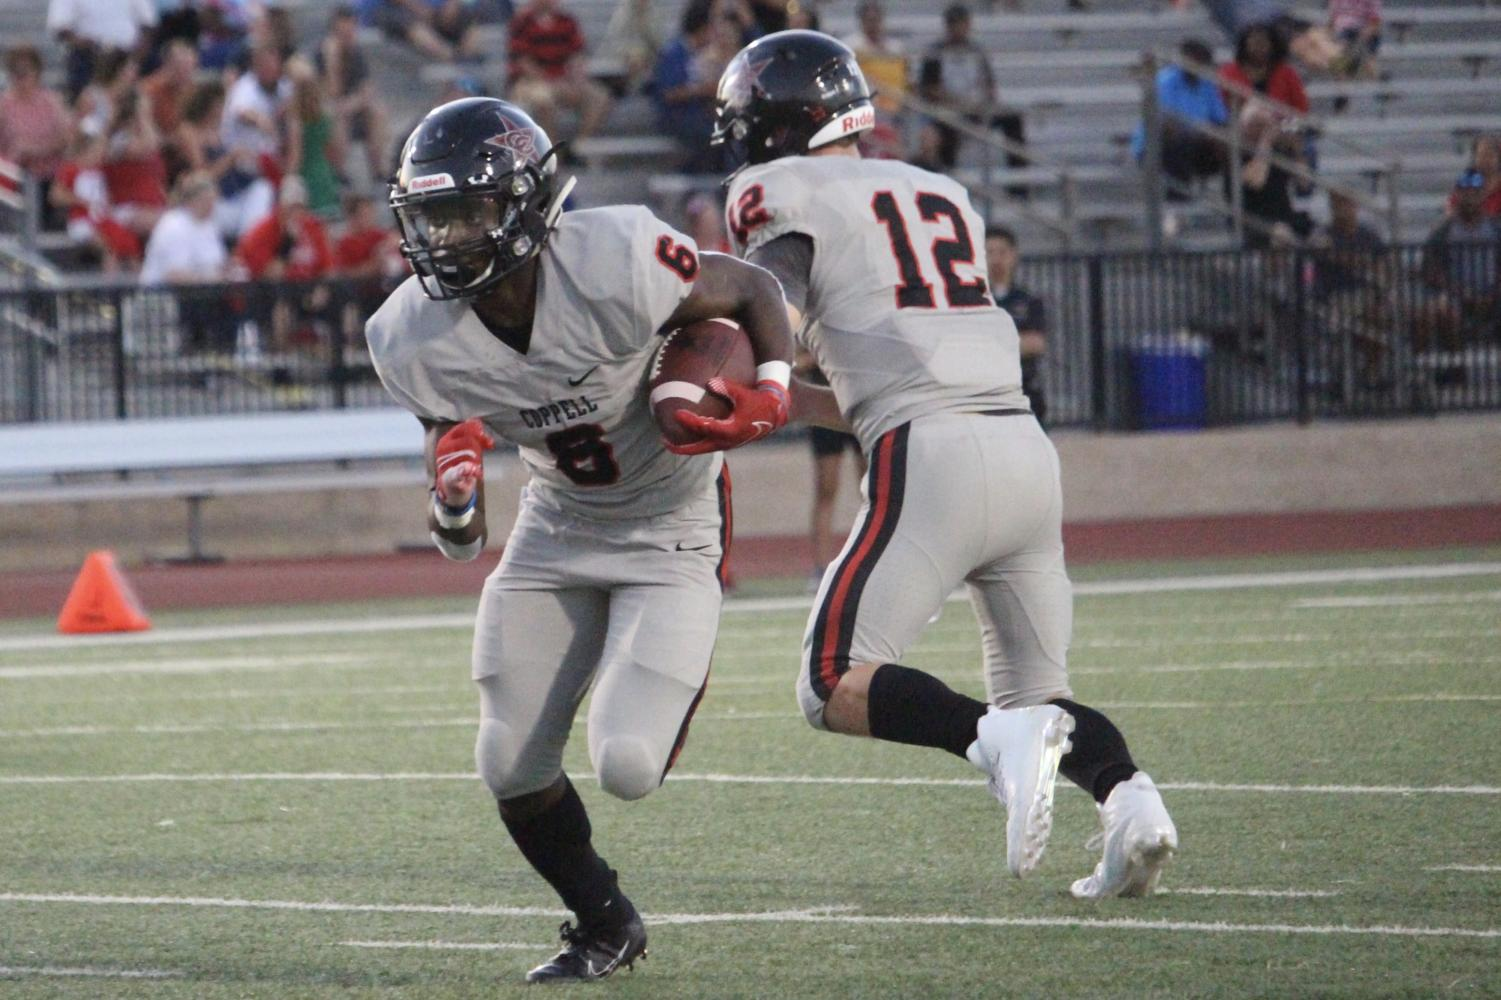 Coppell junior running back Jason Ngwu runs for a touchdown on Friday at Joy and Ralph Ellis Stadium in Irving. Coppell defeated MacArthur, 42-6.